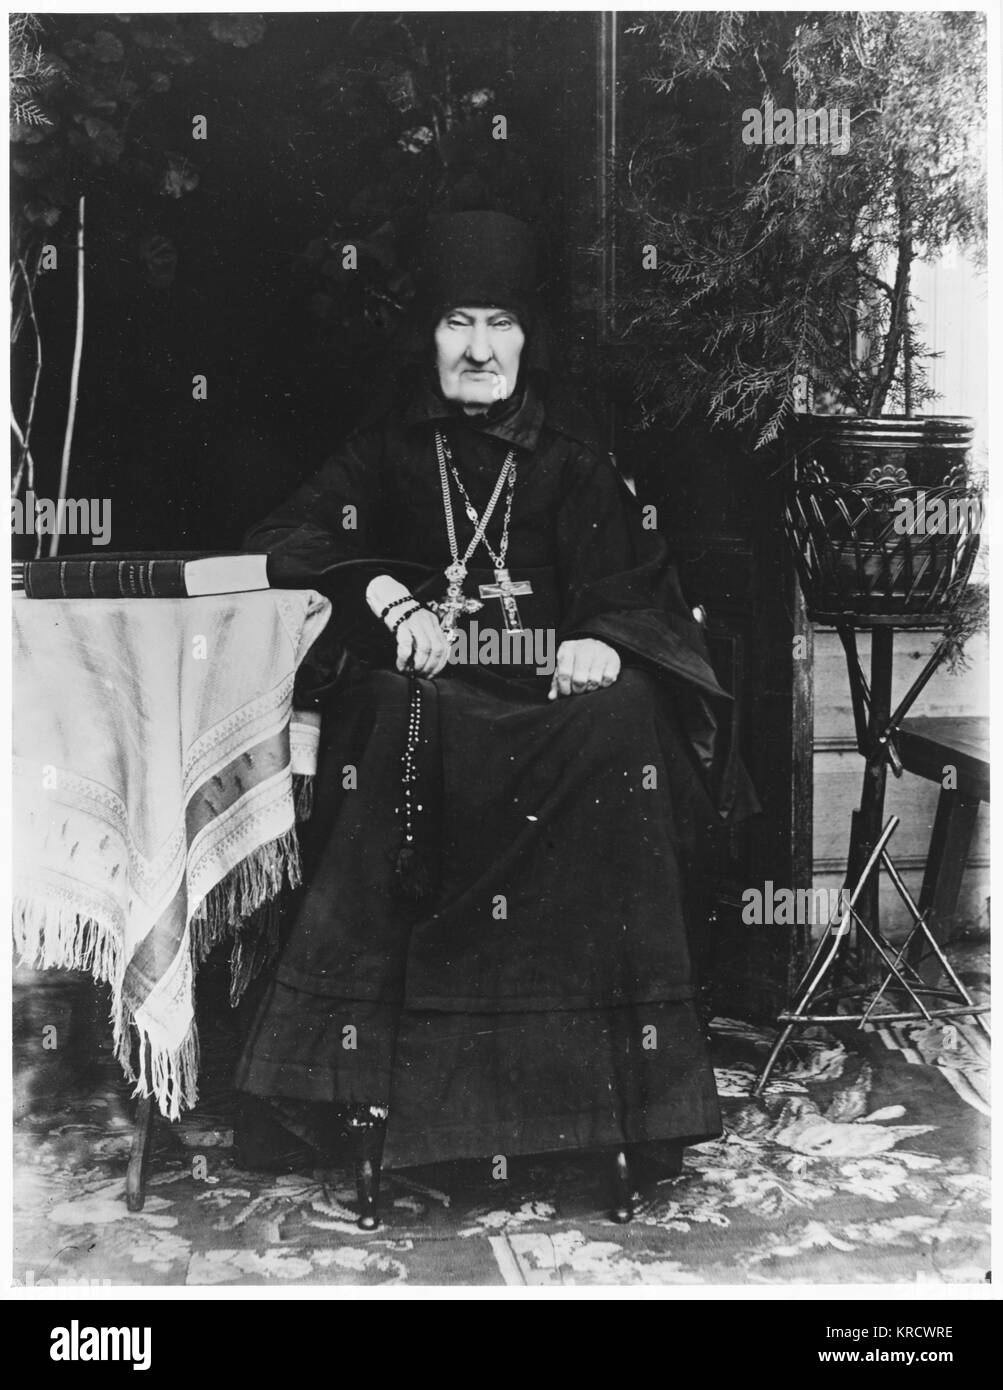 The Russian Orthodox dean of Uspenksy Convent Date: 1892 - Stock Image